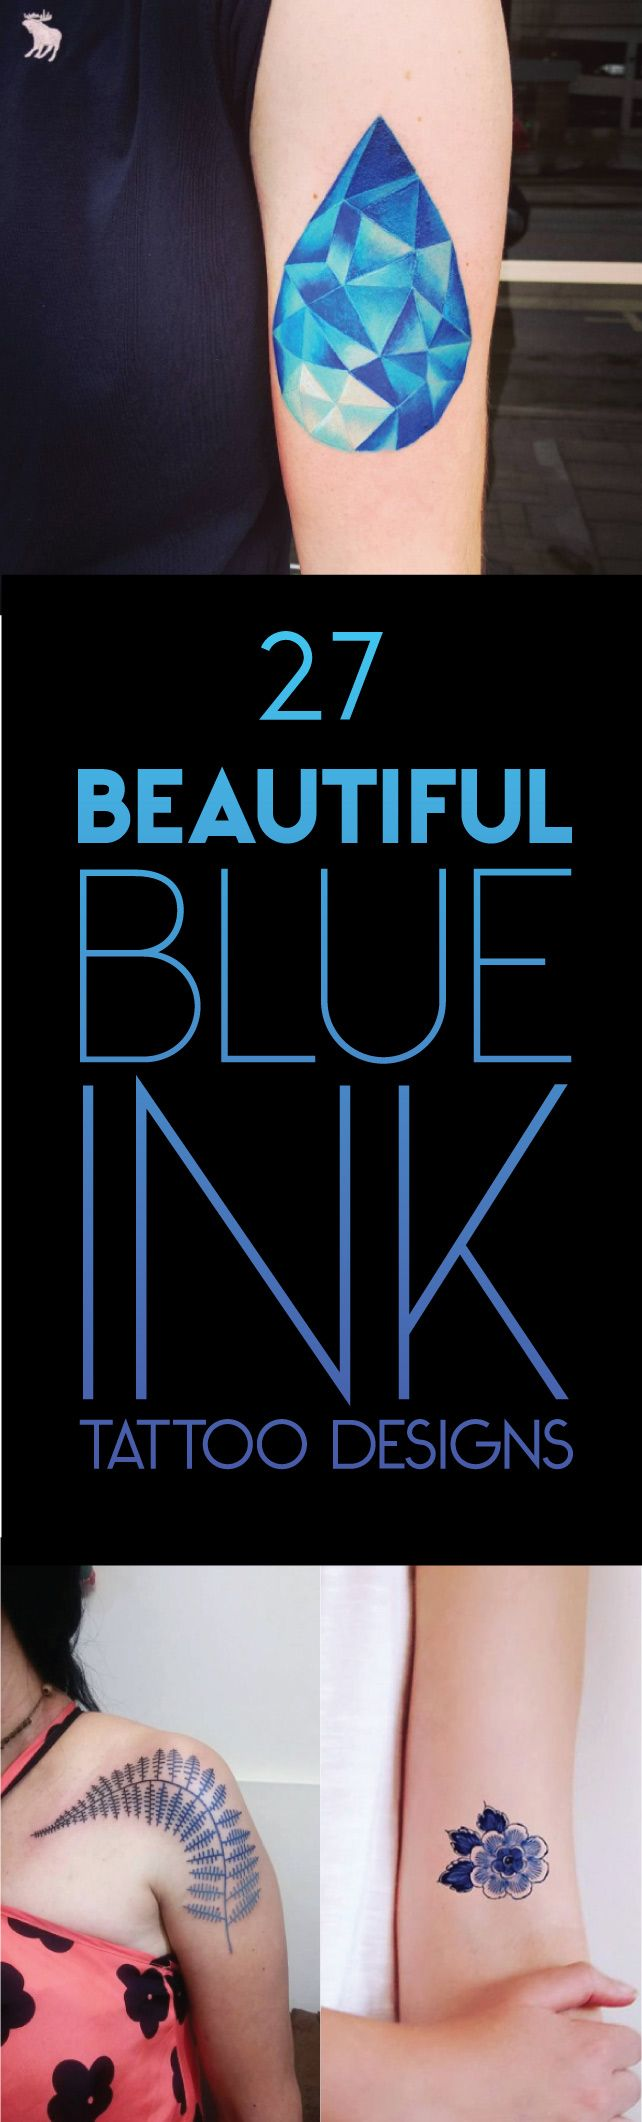 27 Beautiful Blue Ink Tattoo Designs | TattooBlend